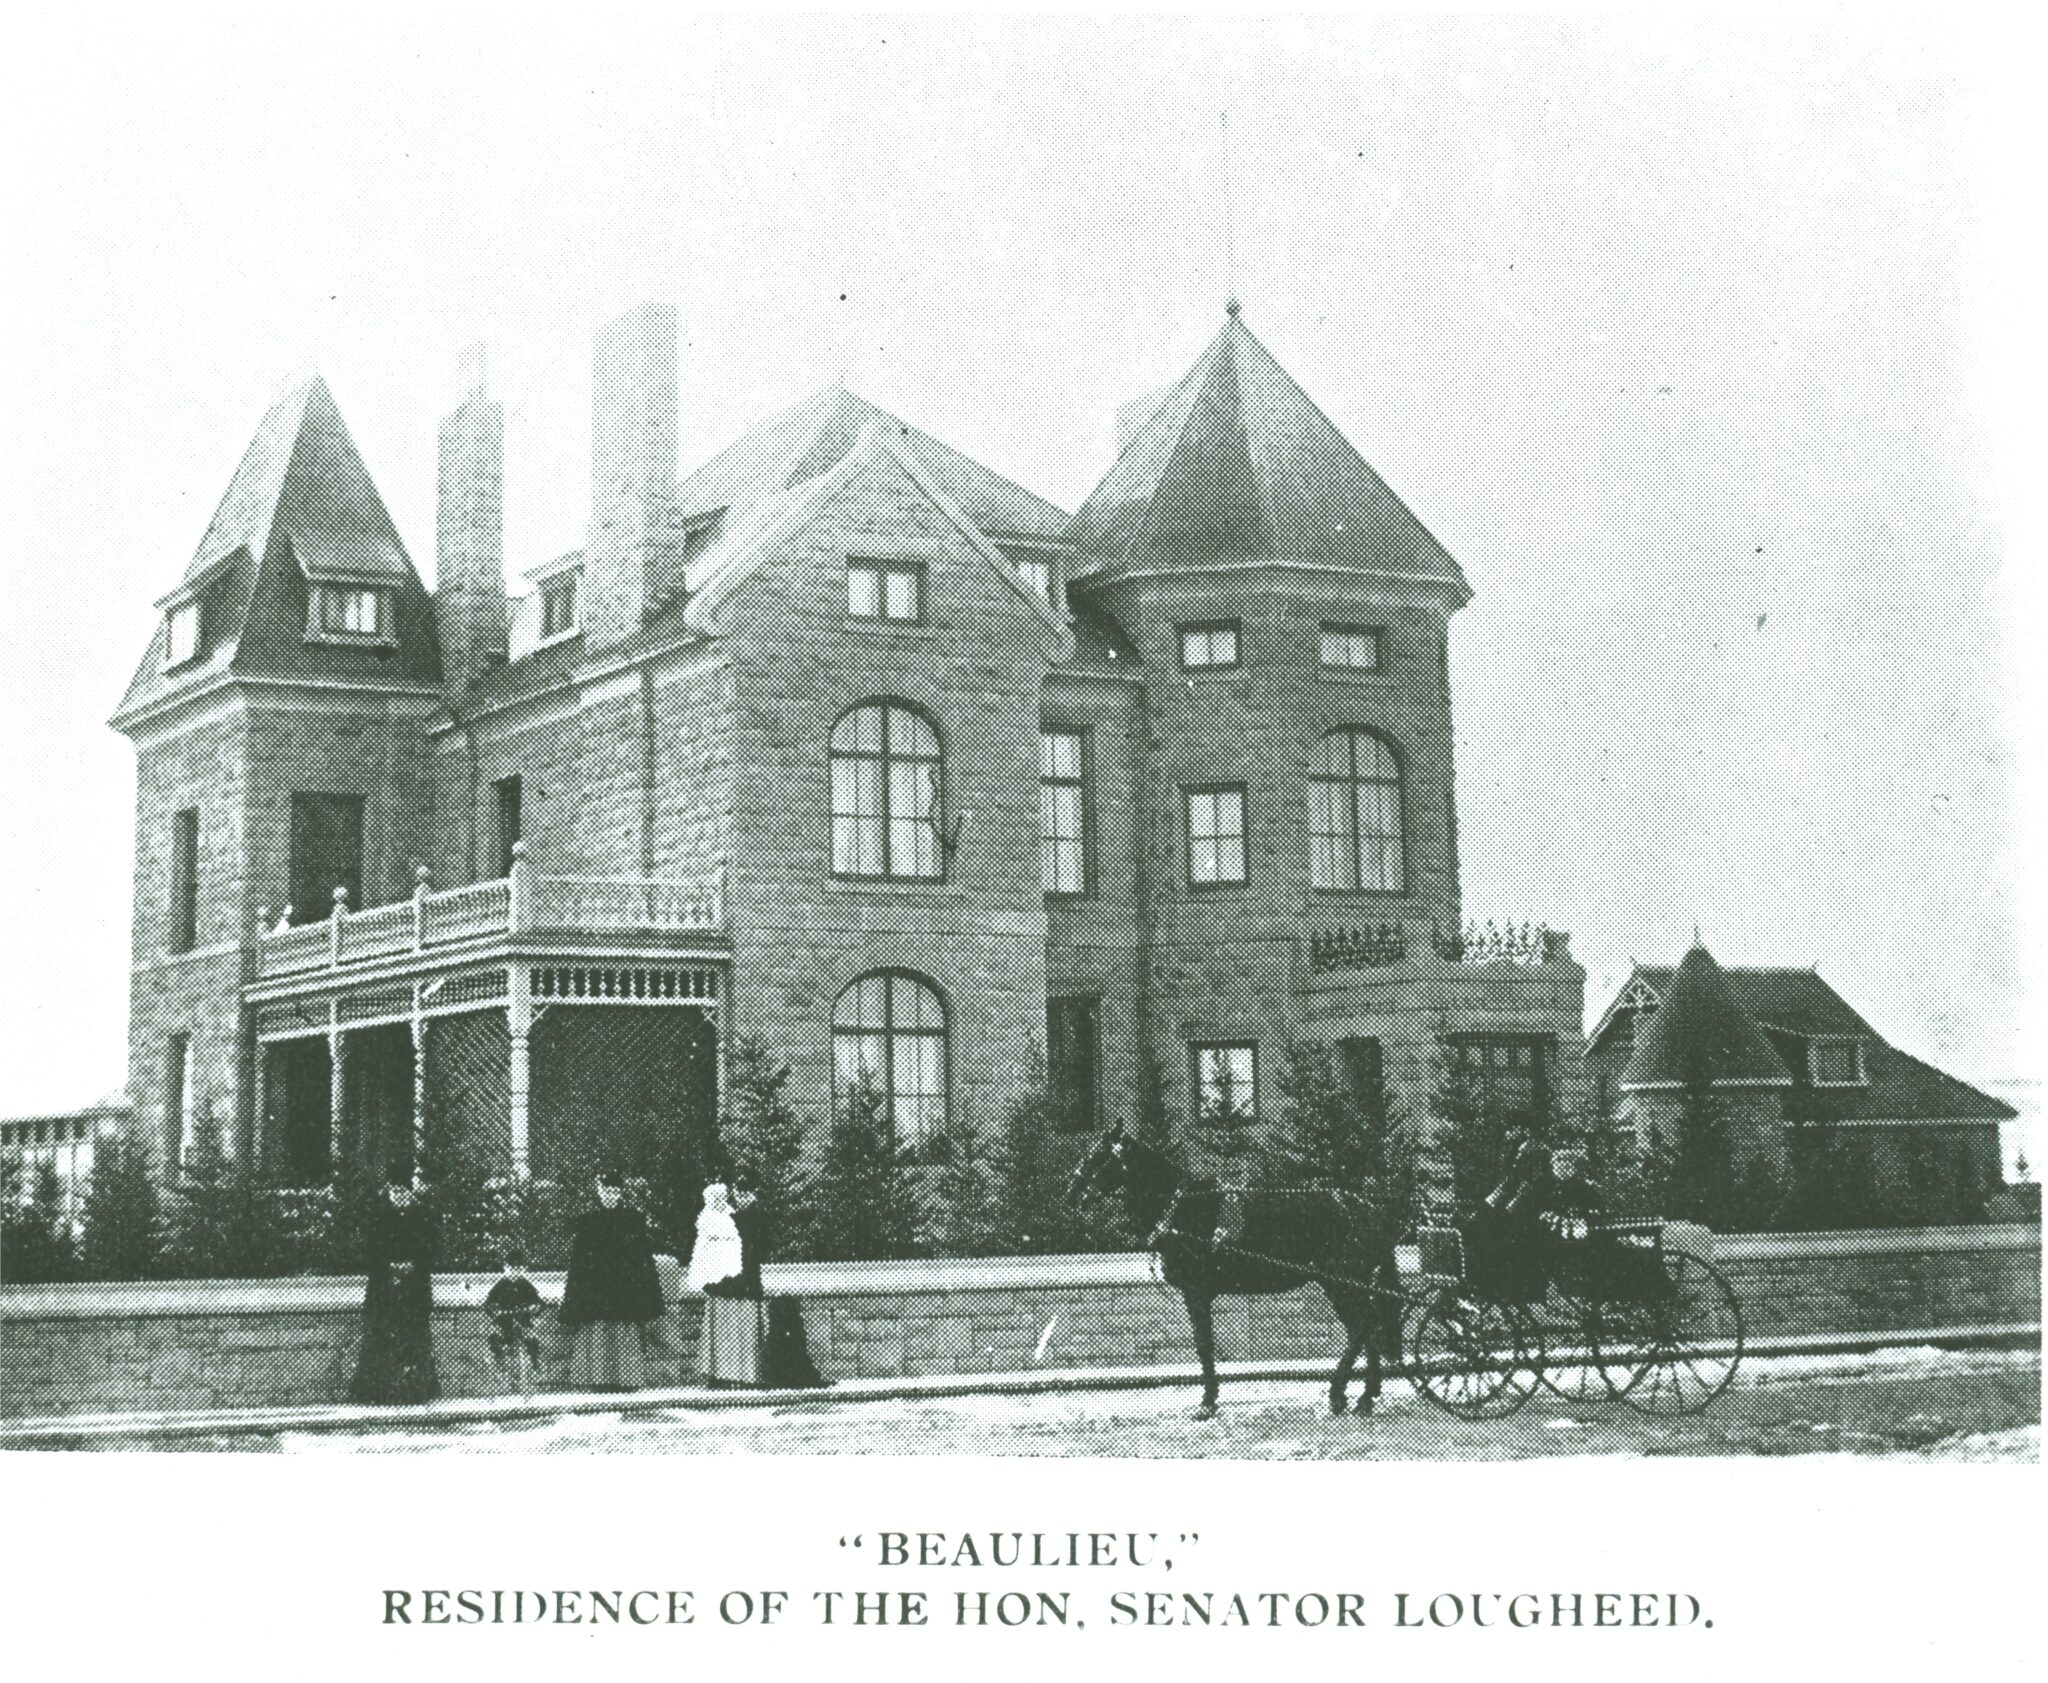 Black and white image c. 1903 of sandstone mansion with people and a carriage in front.